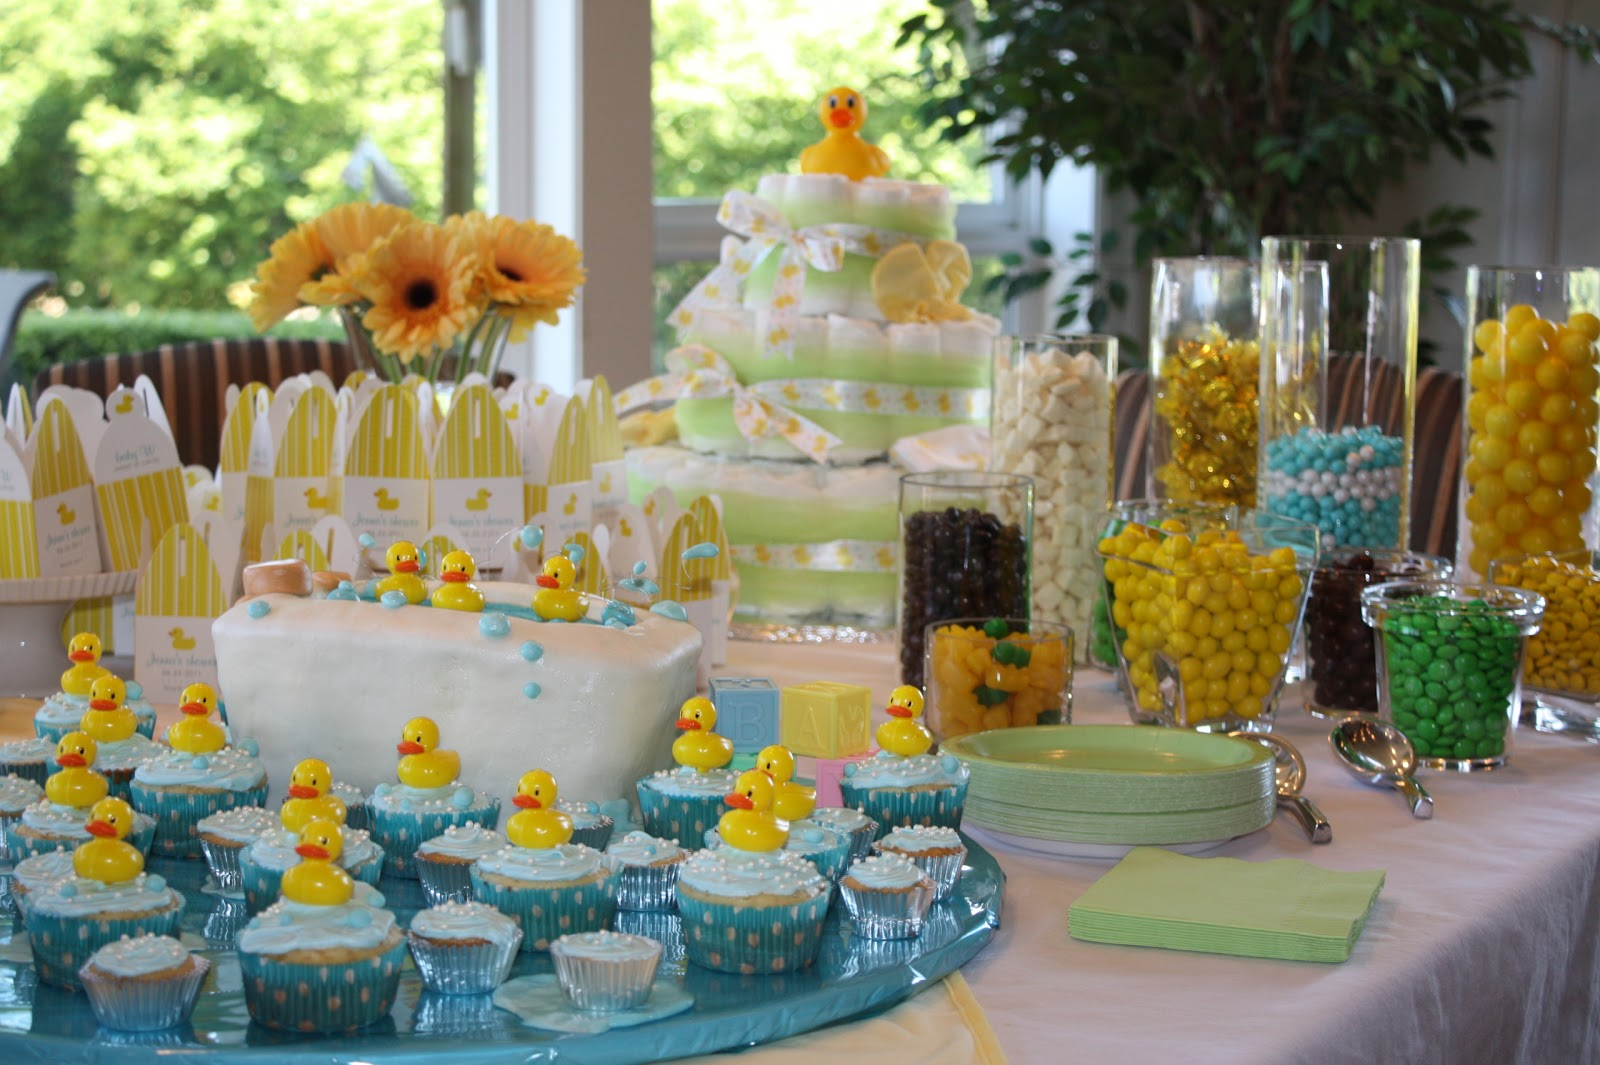 the sweets table included candy cupcakes and a cake shaped as a